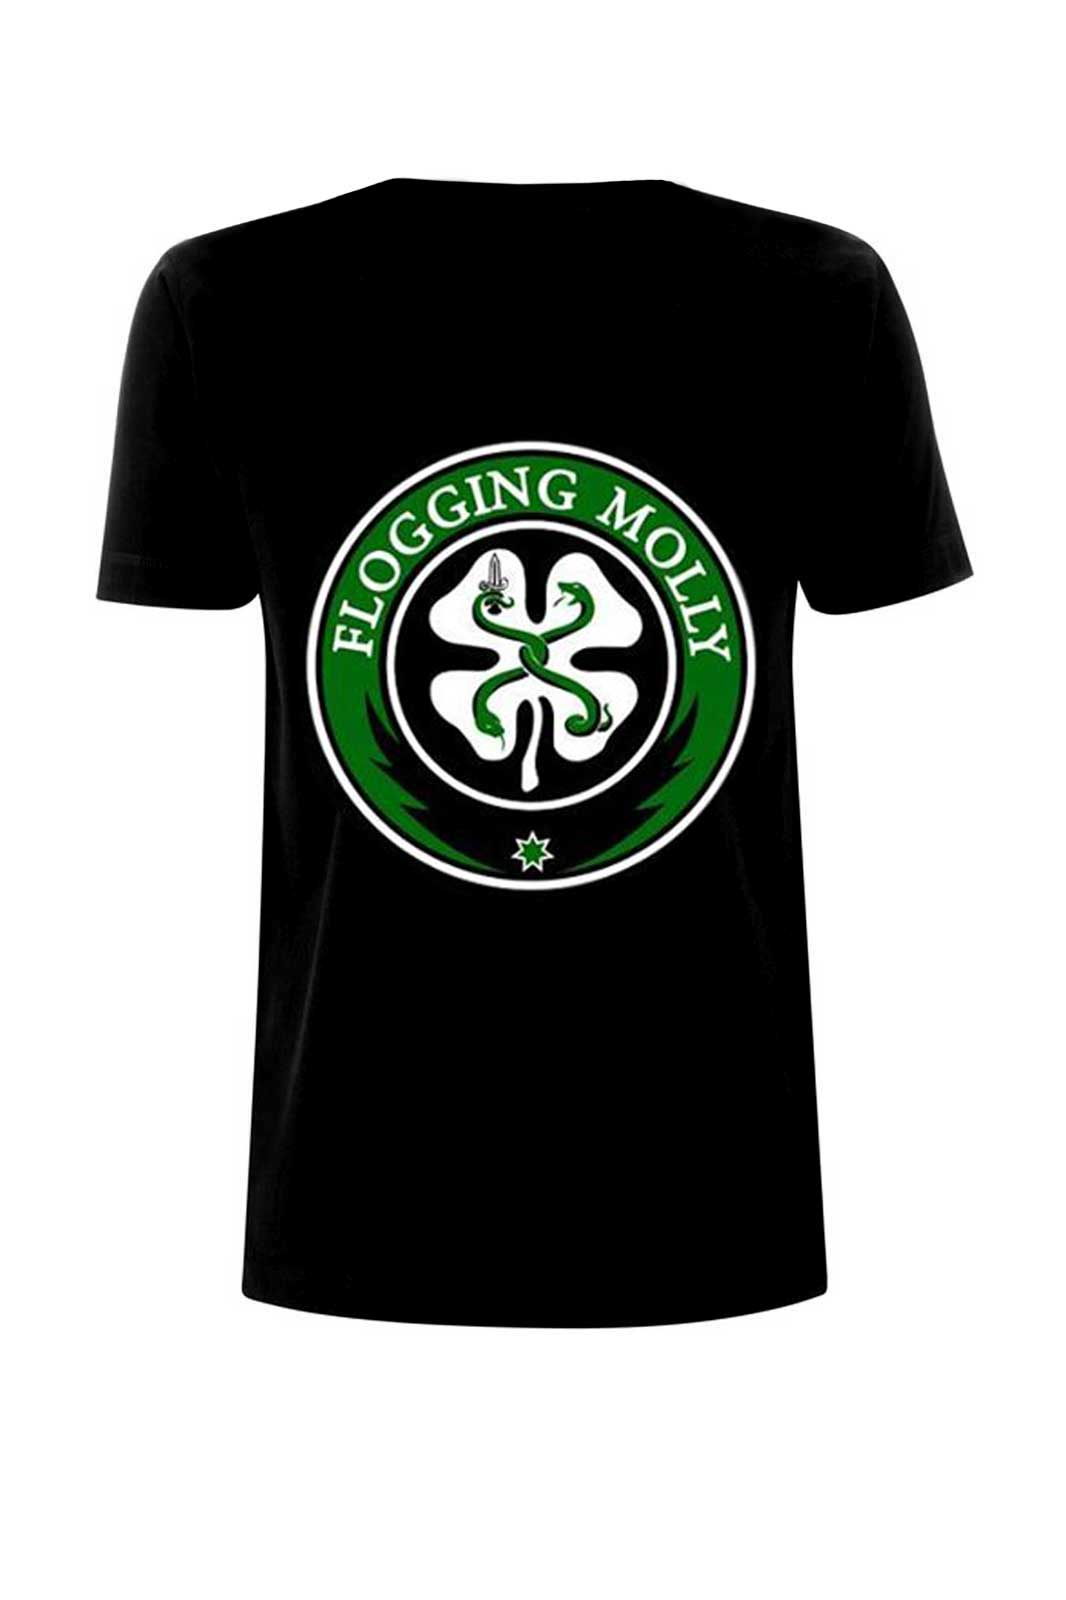 Flogging Molly Tee